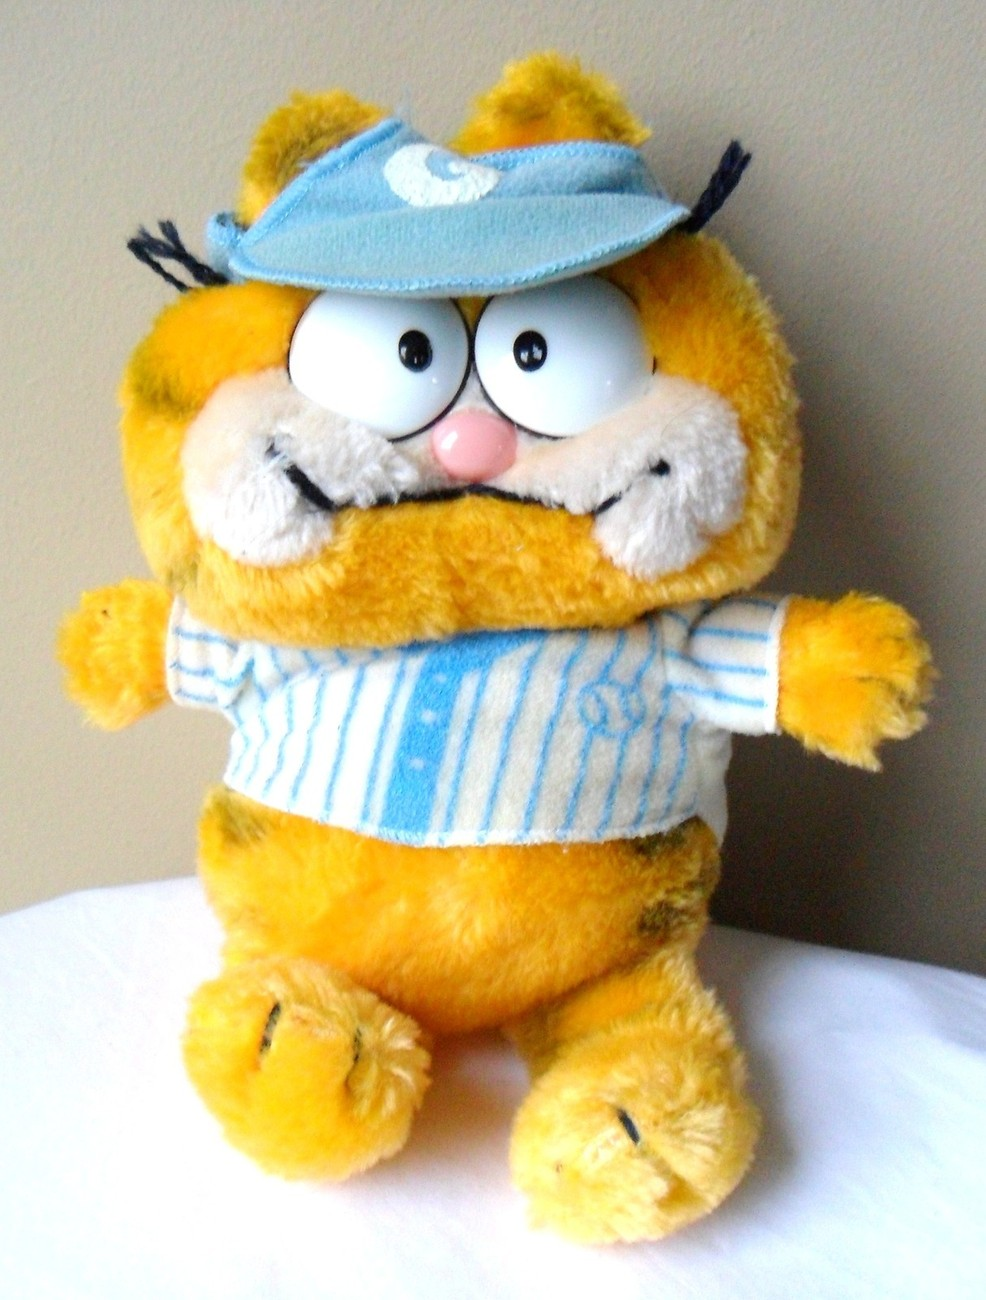 "GARFIELD 1981"" Dakin Vintage Baseball Player  9"" Plush Stuffed Cat Toy Hat Blue"